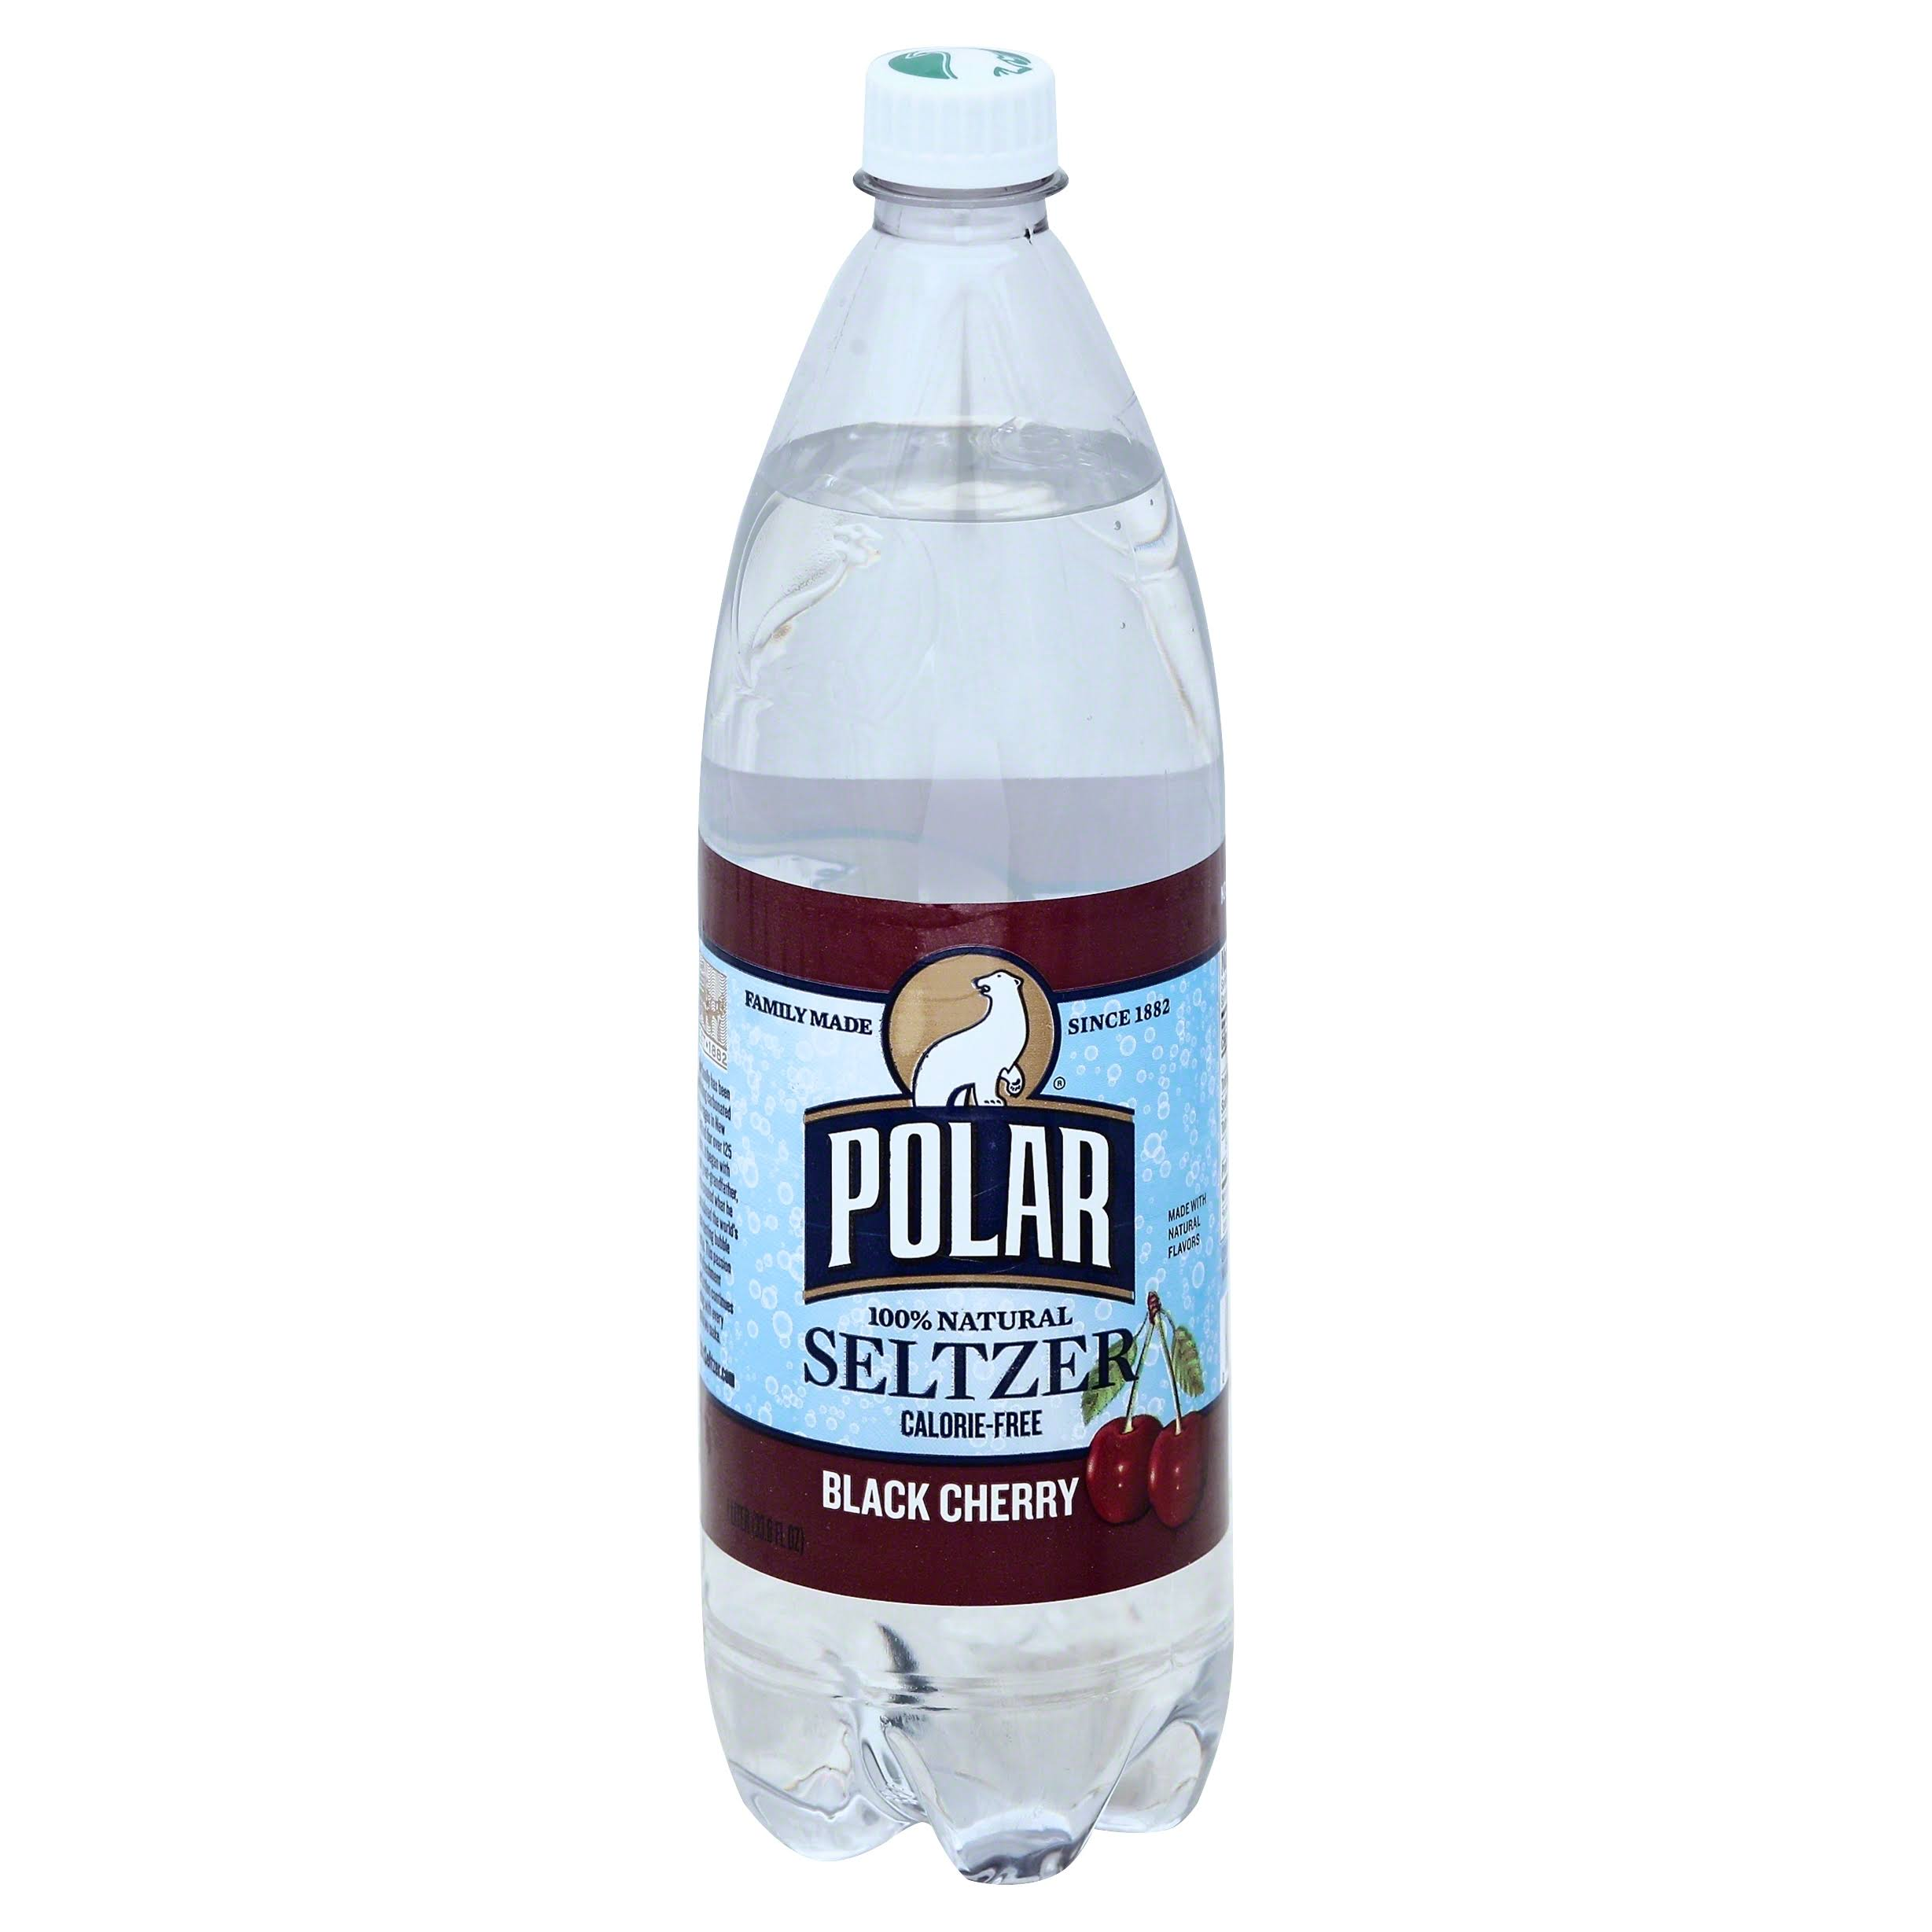 Polar Seltzer - Black Cherry, 1L